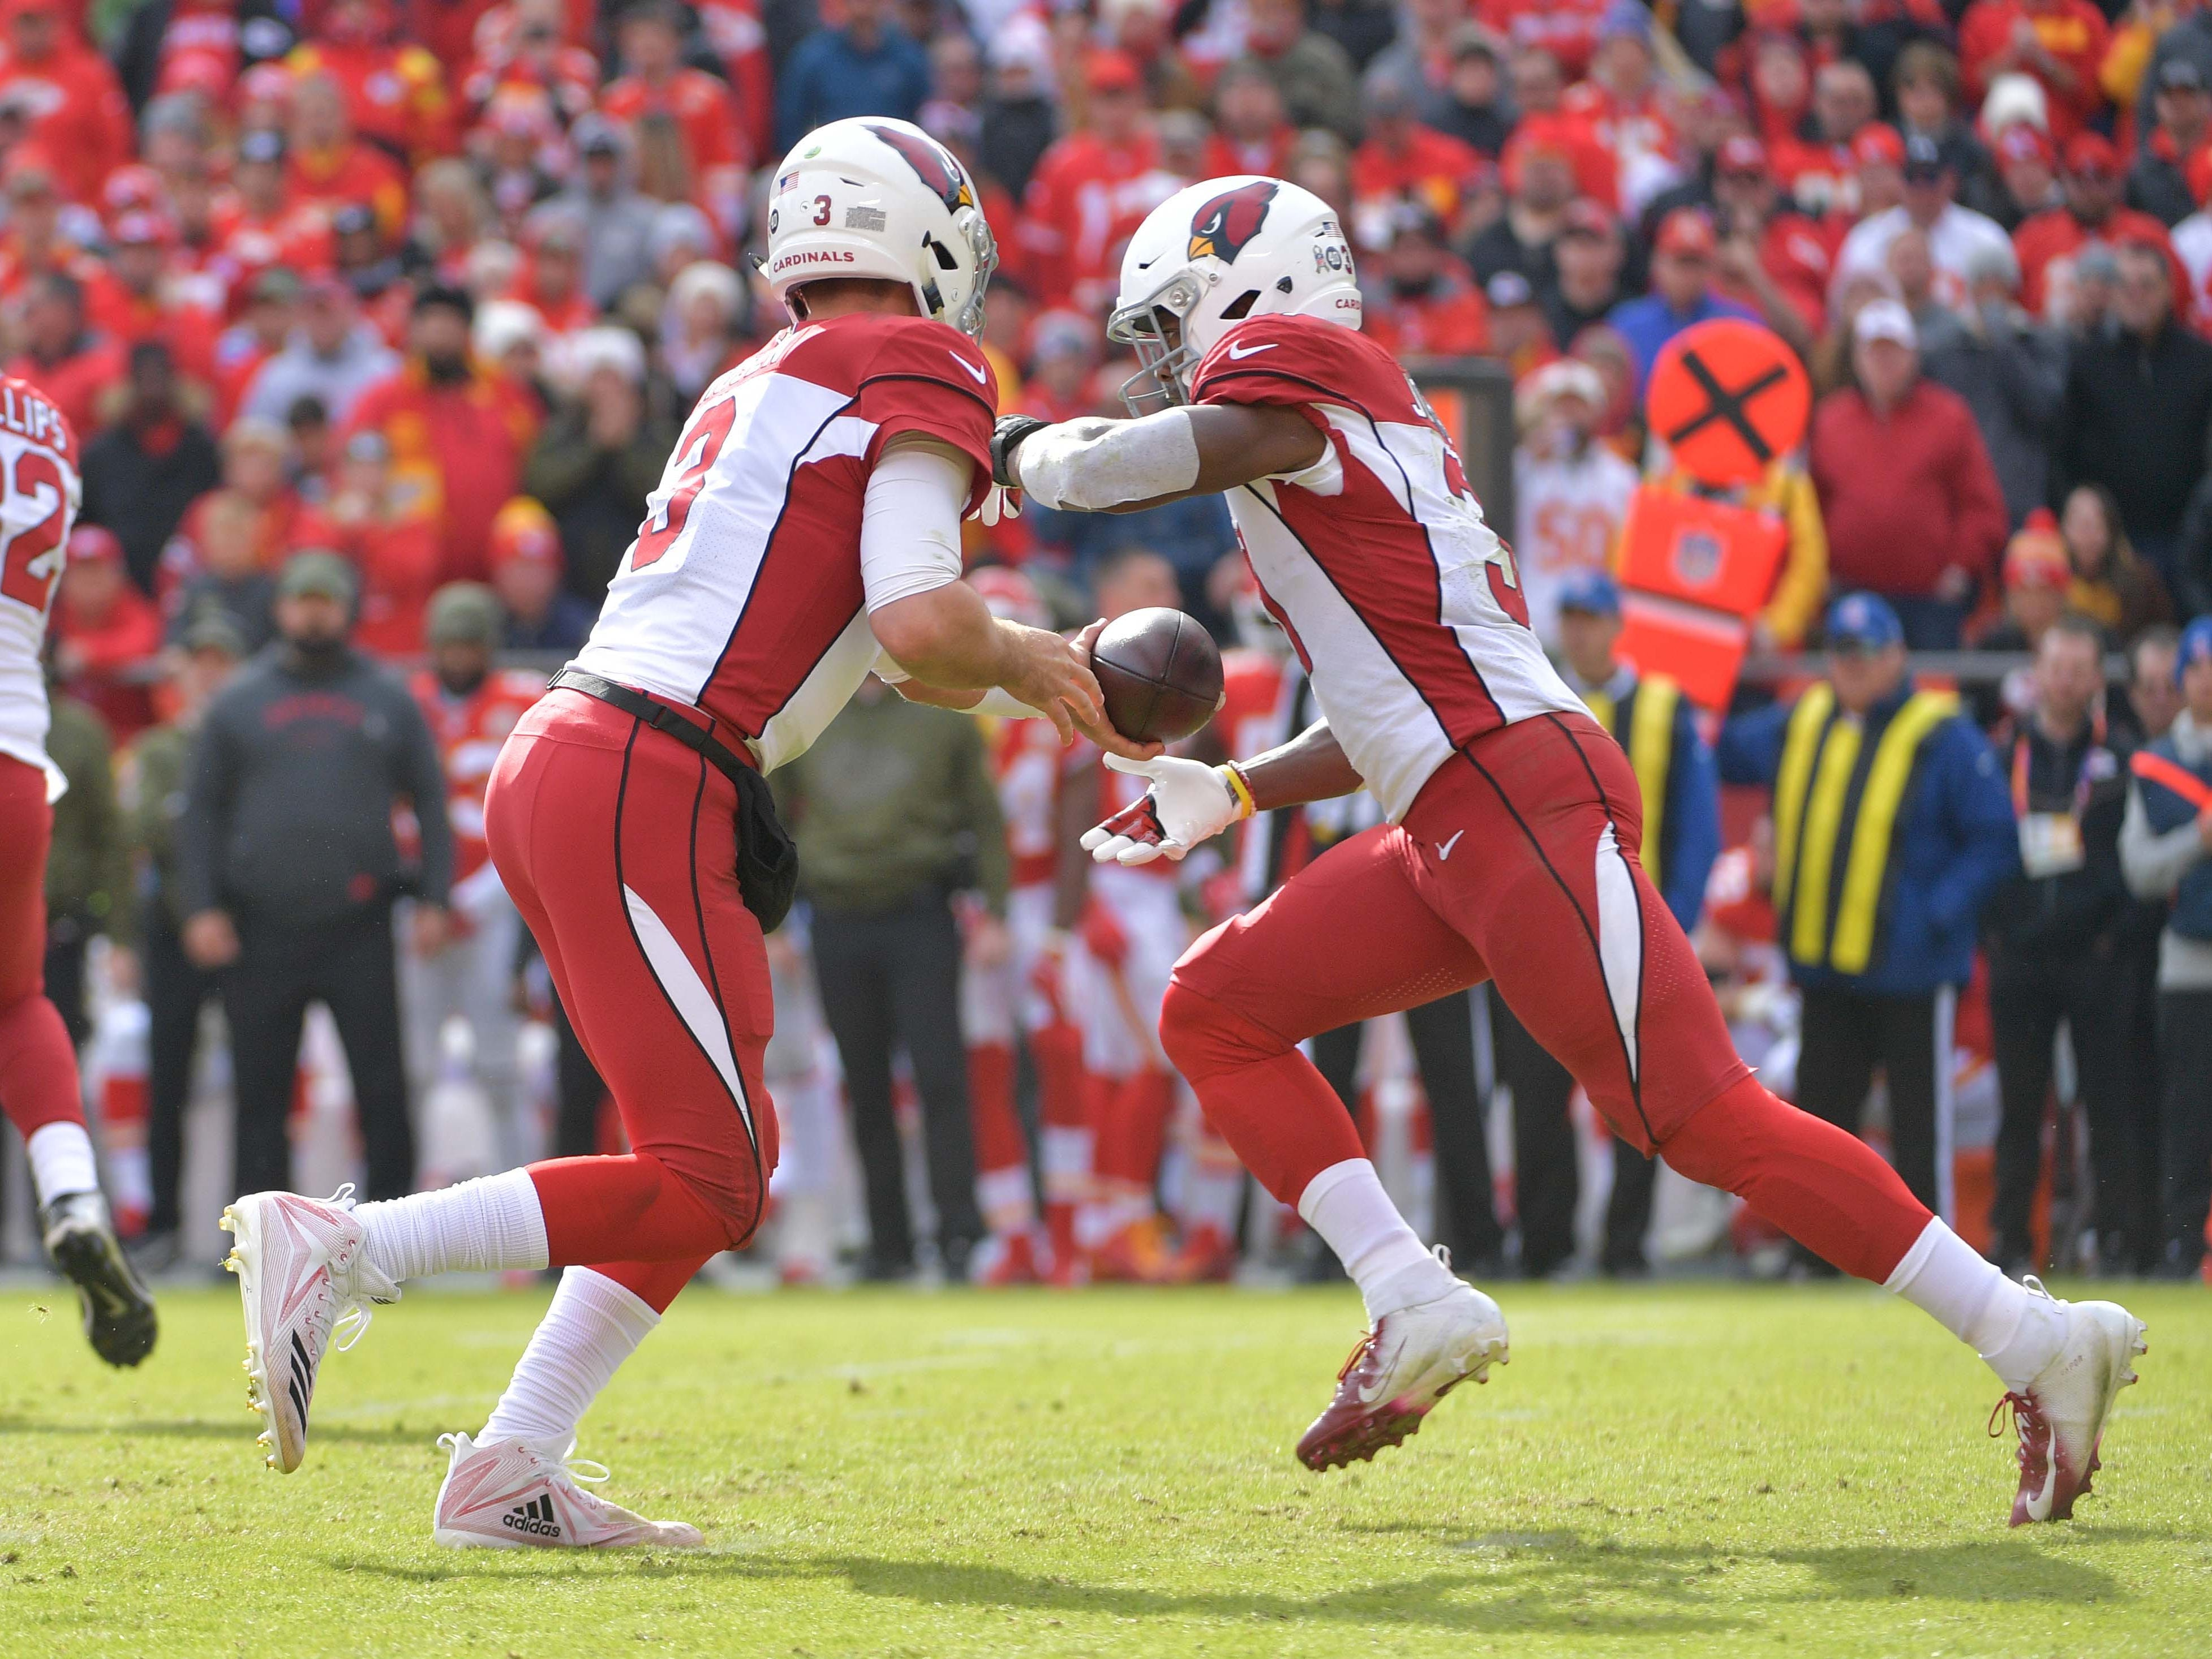 Nov 11, 2018; Kansas City, MO, USA; Arizona Cardinals quarterback Josh Rosen (3) hands off to running back David Johnson (31) during the first half against the Kansas City Chiefs at Arrowhead Stadium. Mandatory Credit: Denny Medley-USA TODAY Sports